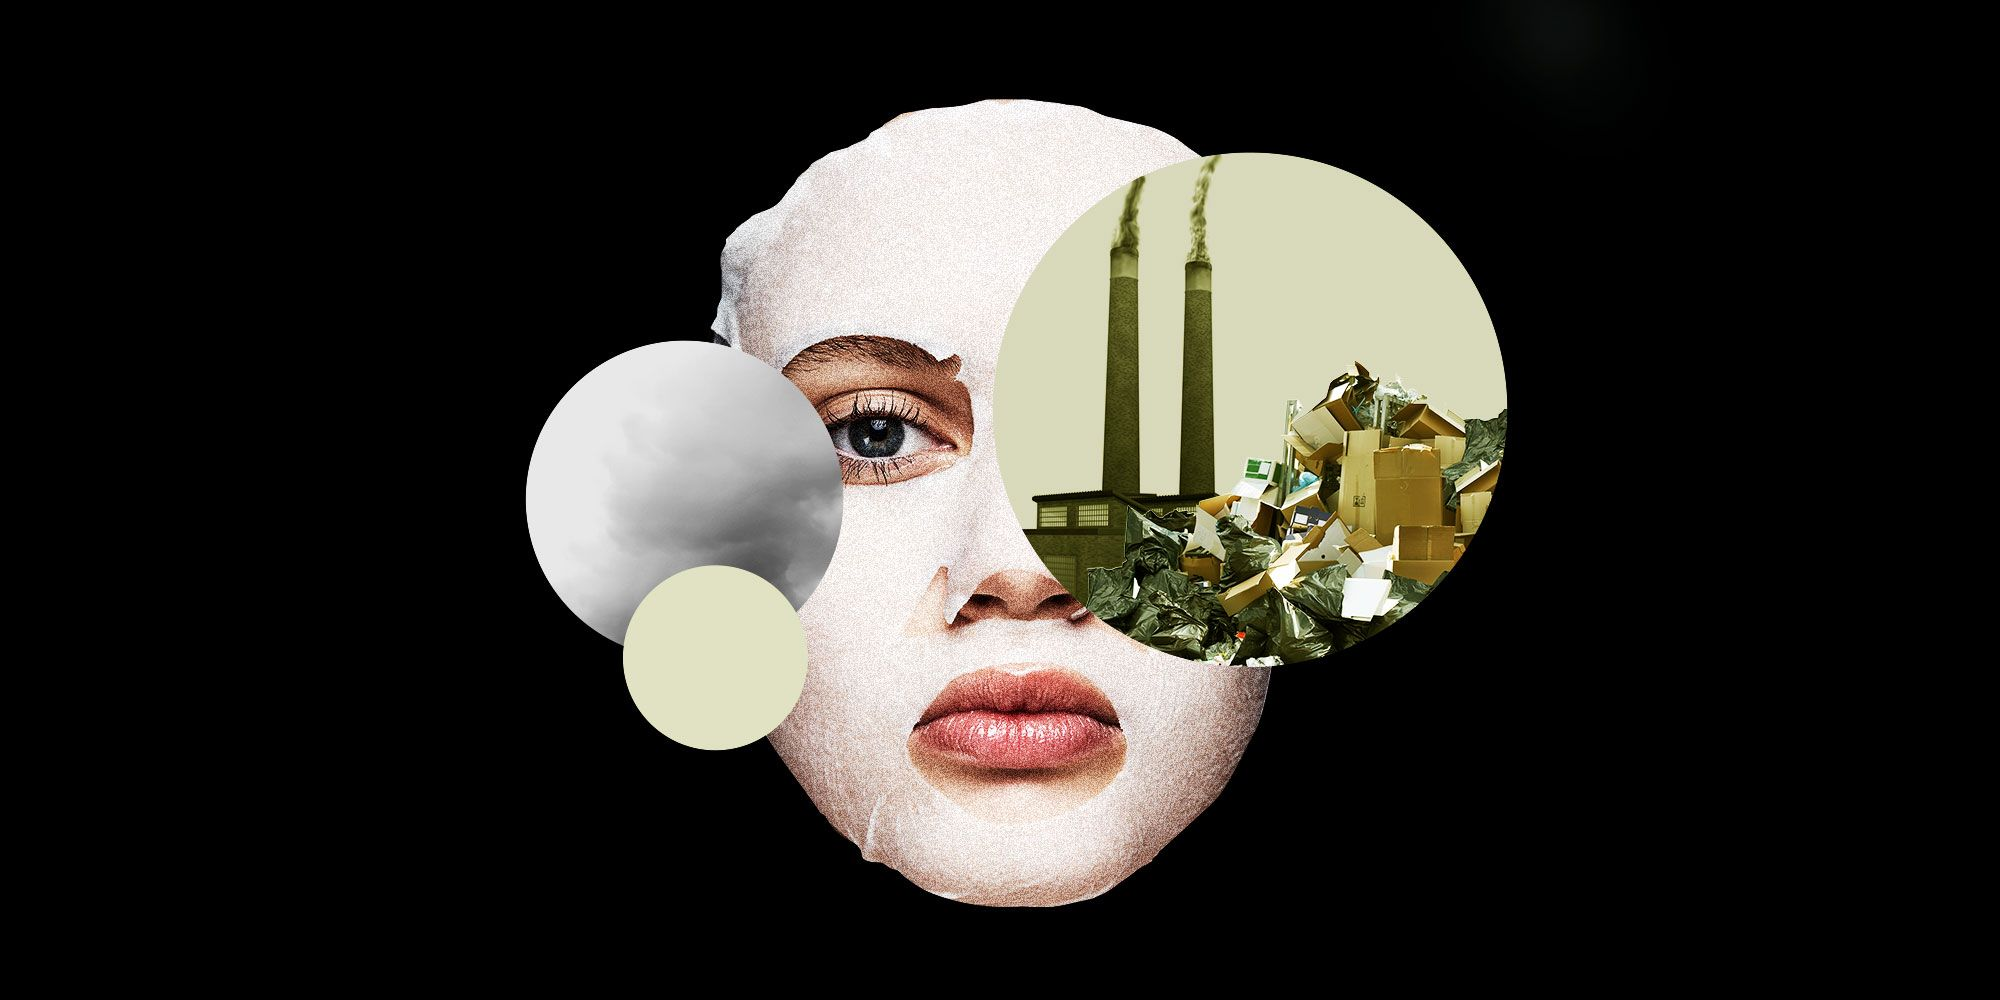 Is This The End Of The Sheet Mask?- The Environmental Implications of One Use Products